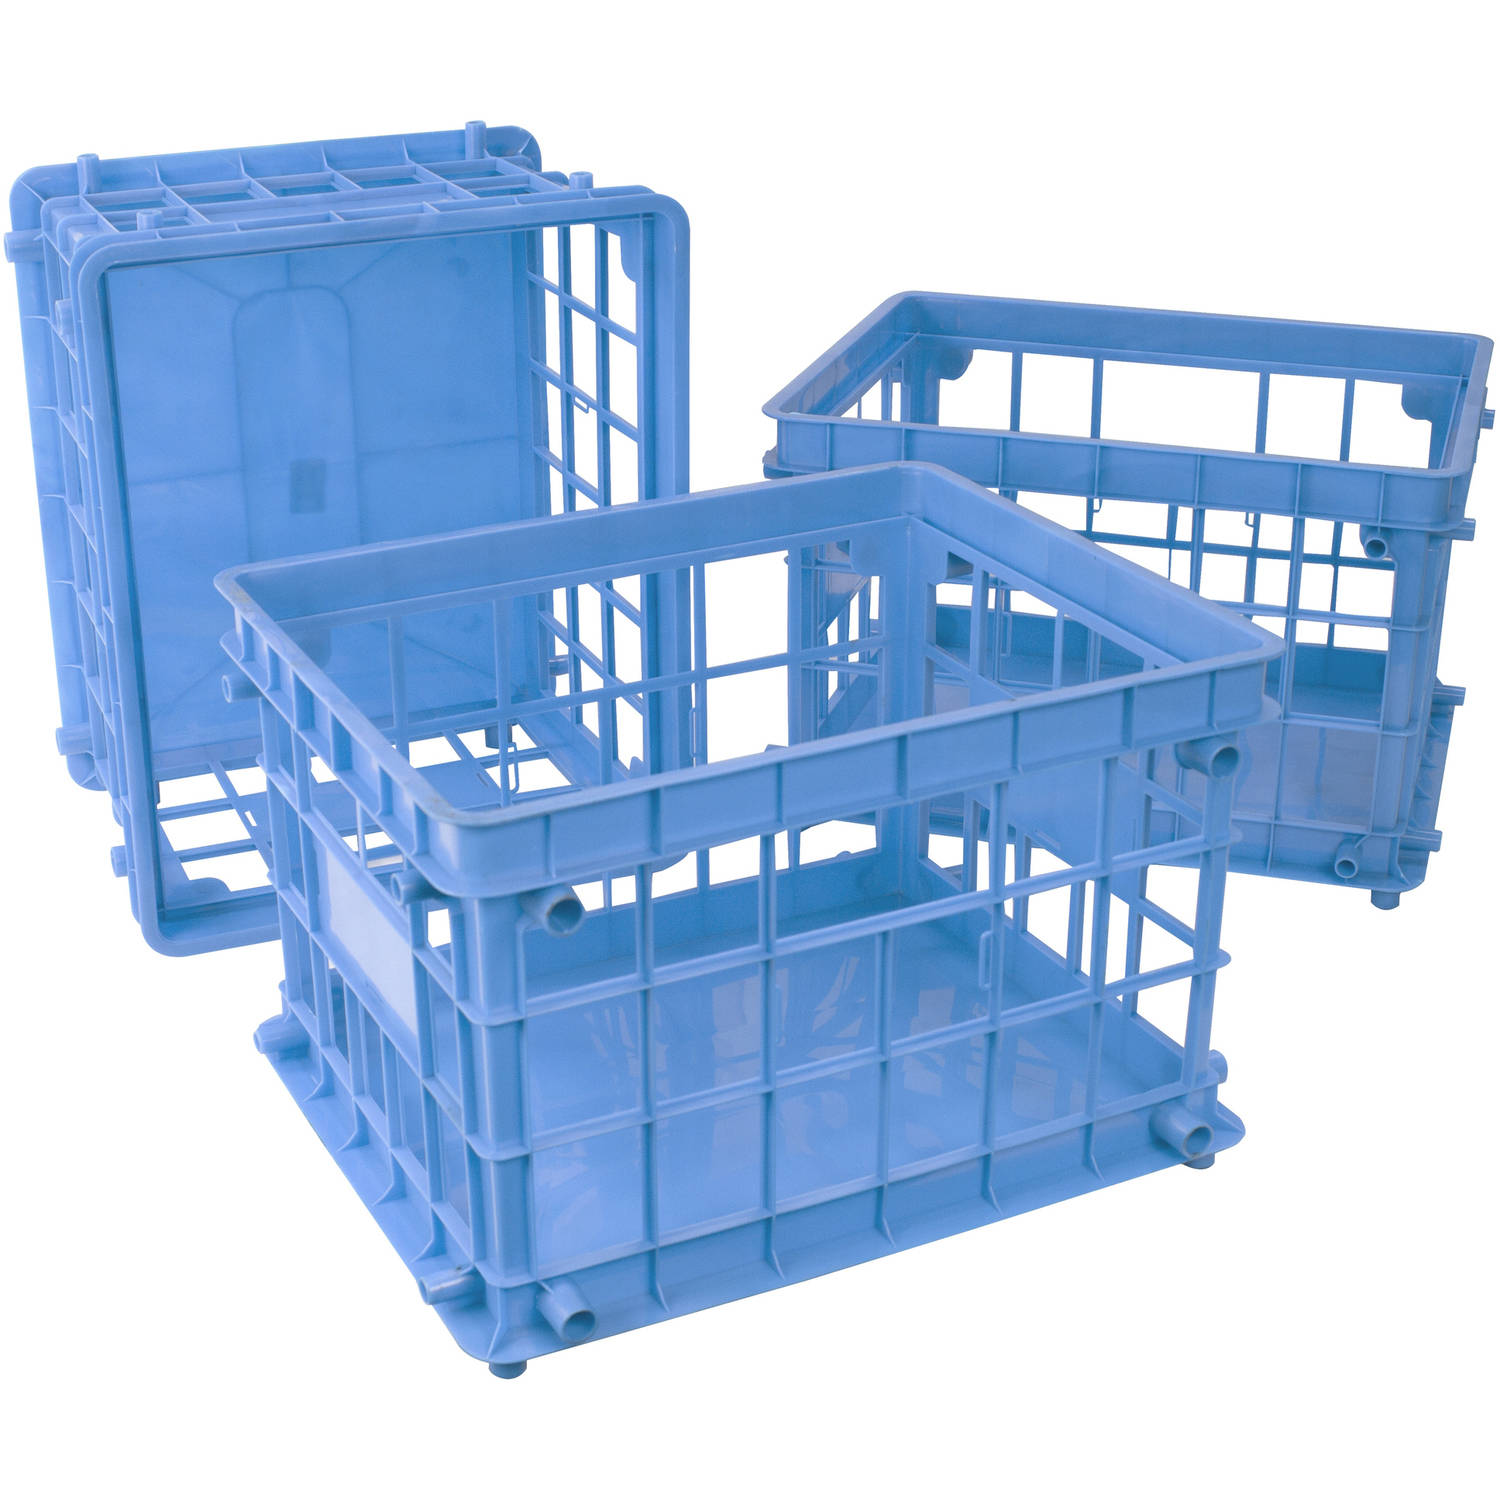 Storex Standard File Crate / Letter/Legal,Blue (3 units/pack)